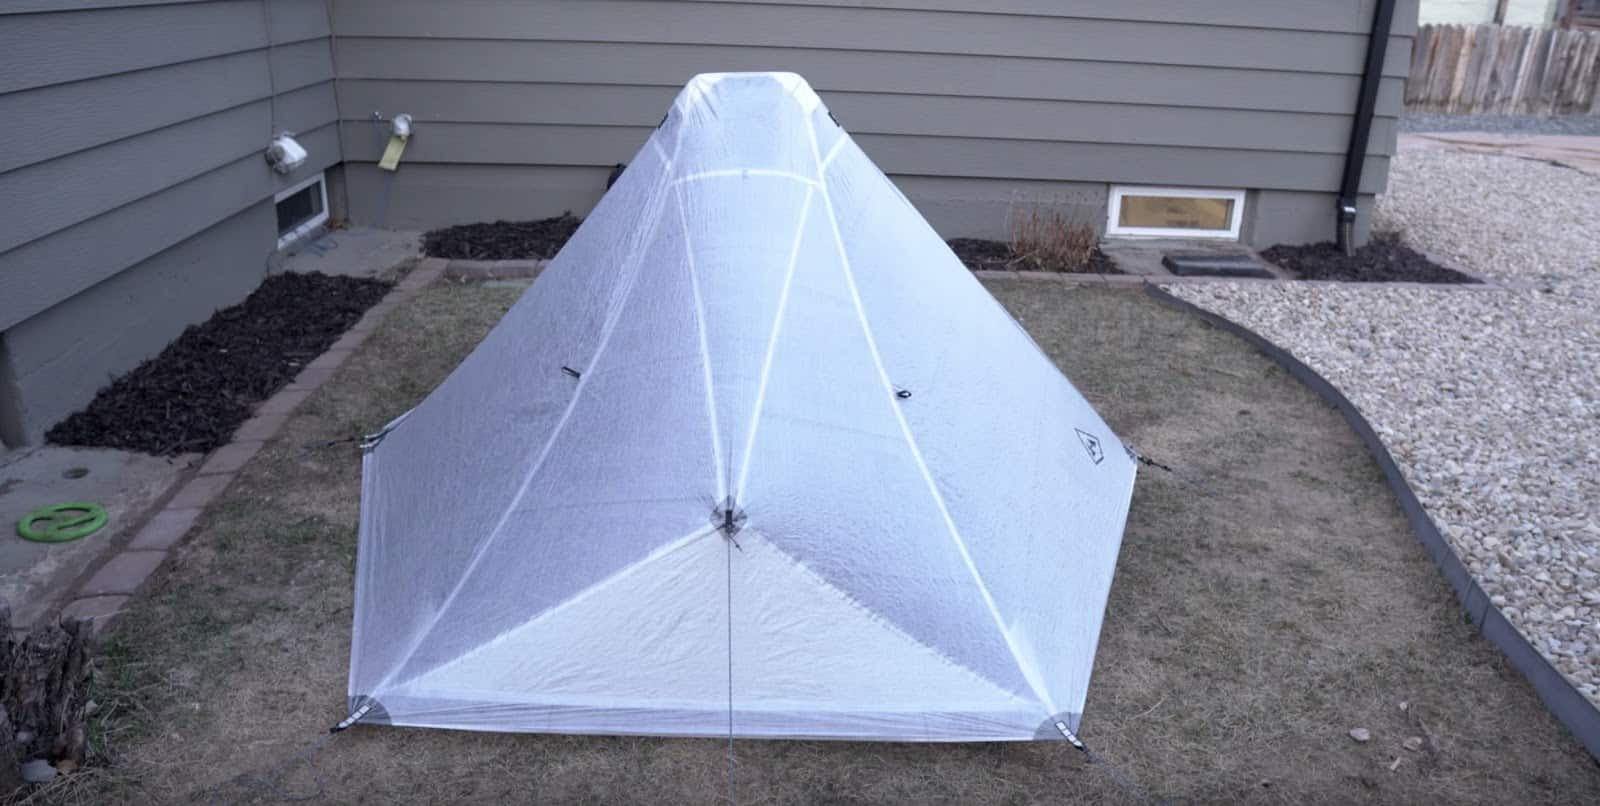 hyperlite hmg dirigo 2 review tent 2